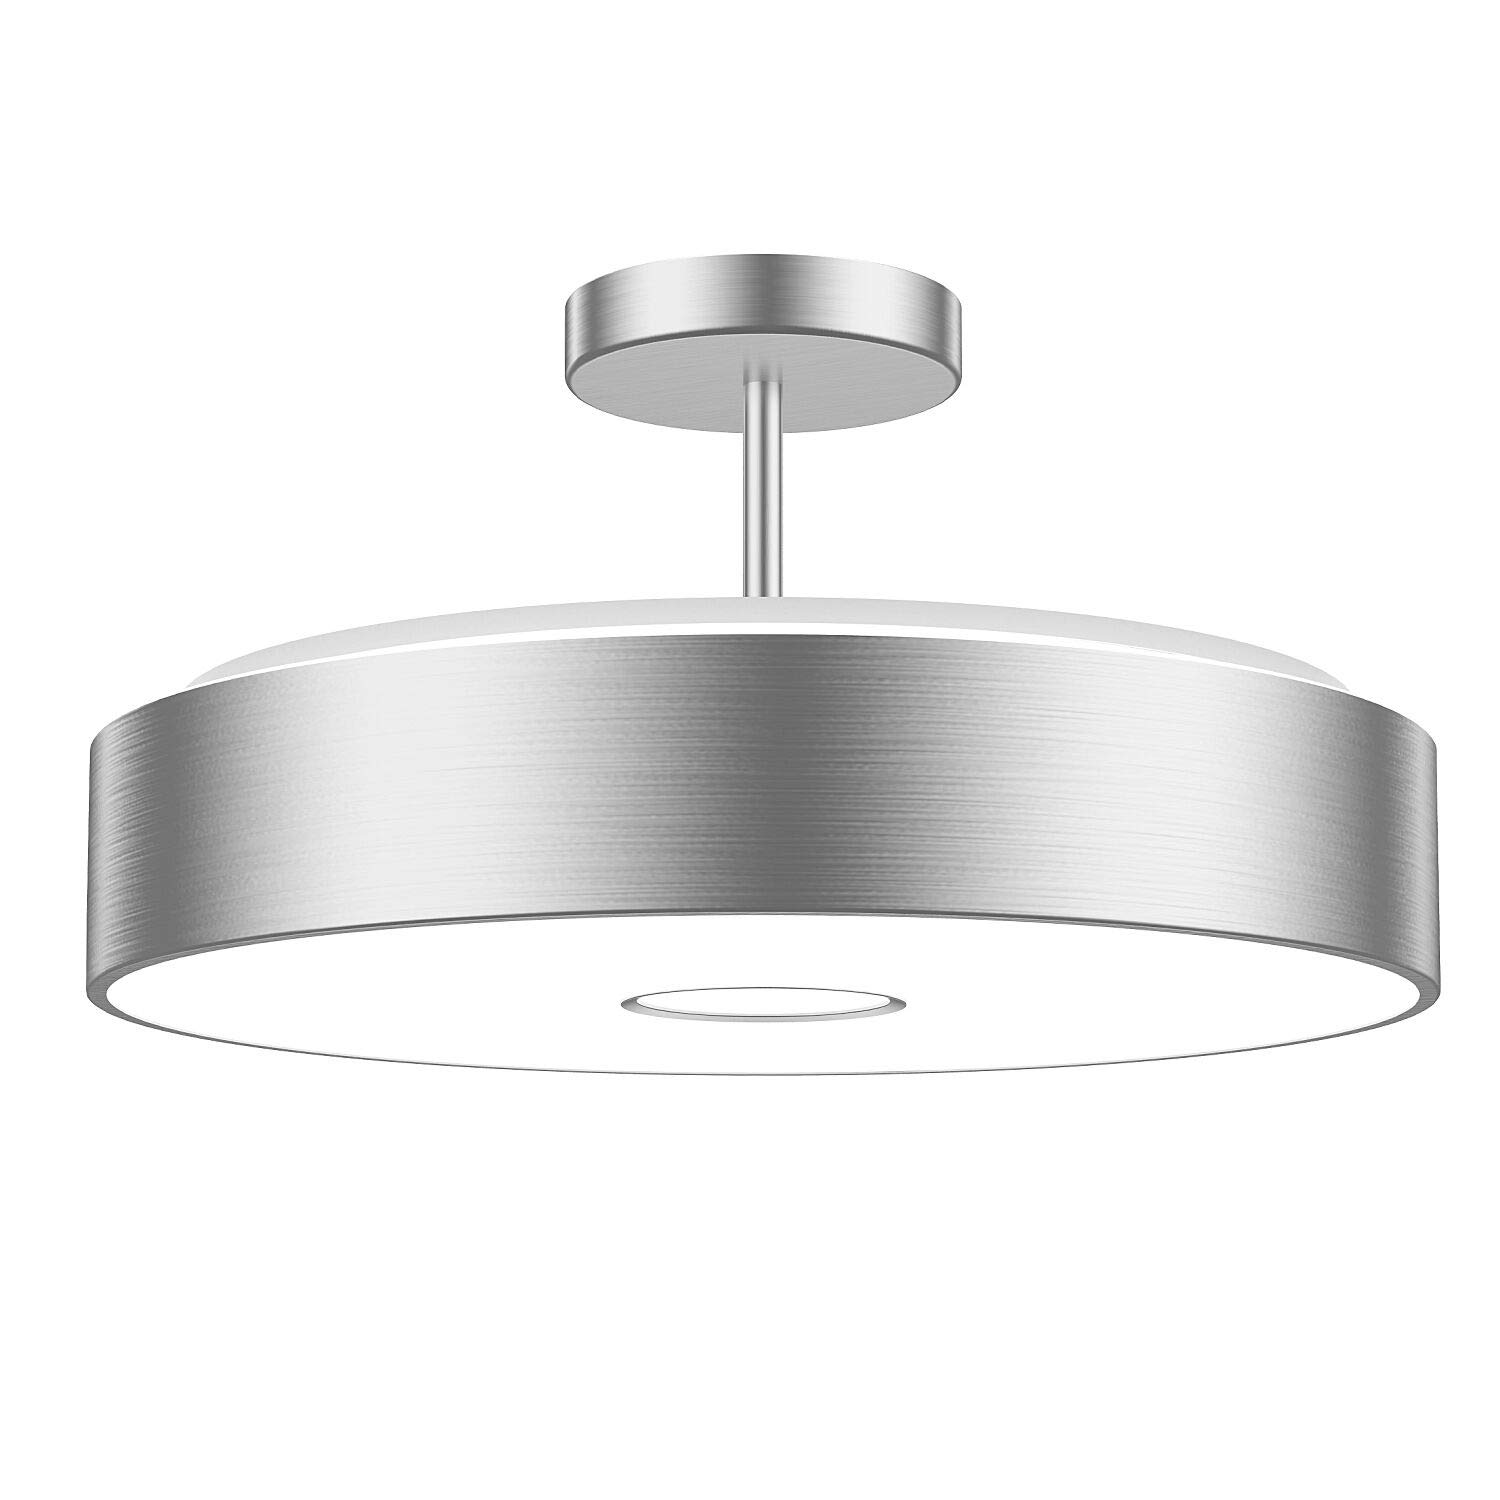 Onforu waterproof 32w led ceiling lights cri 90 12 8in 300w incandescent bulbs equivalent ip65 2800lm 5000k daylight white semi flush mount for